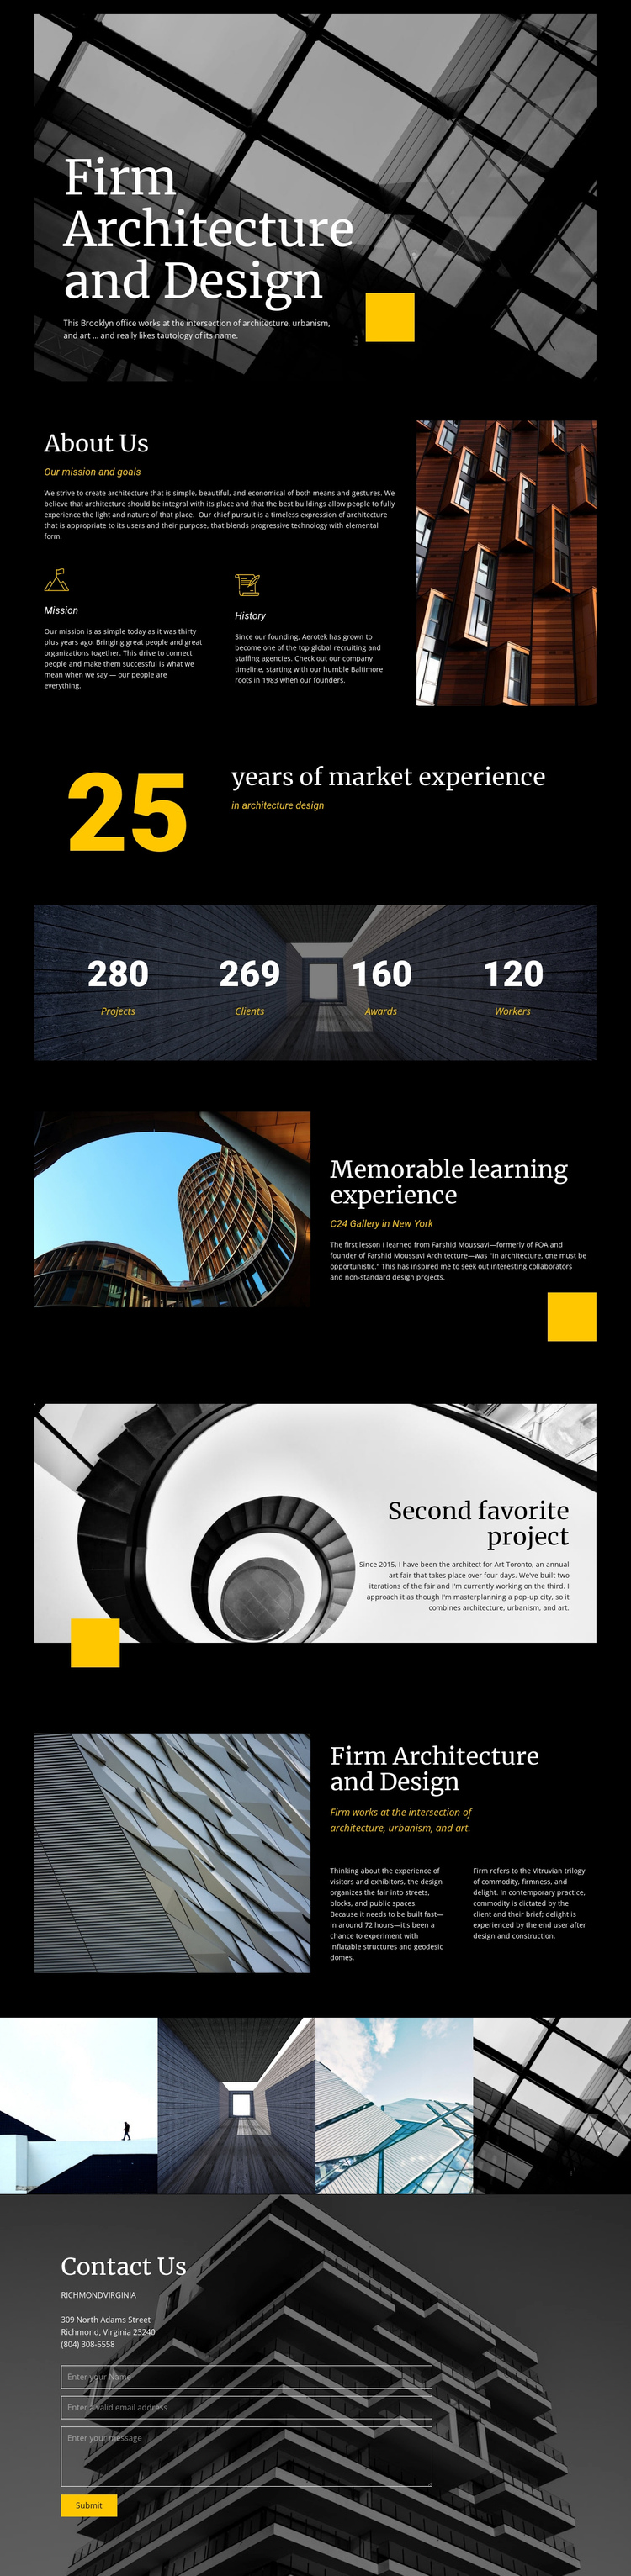 Firm architecture and Design Website Builder Software